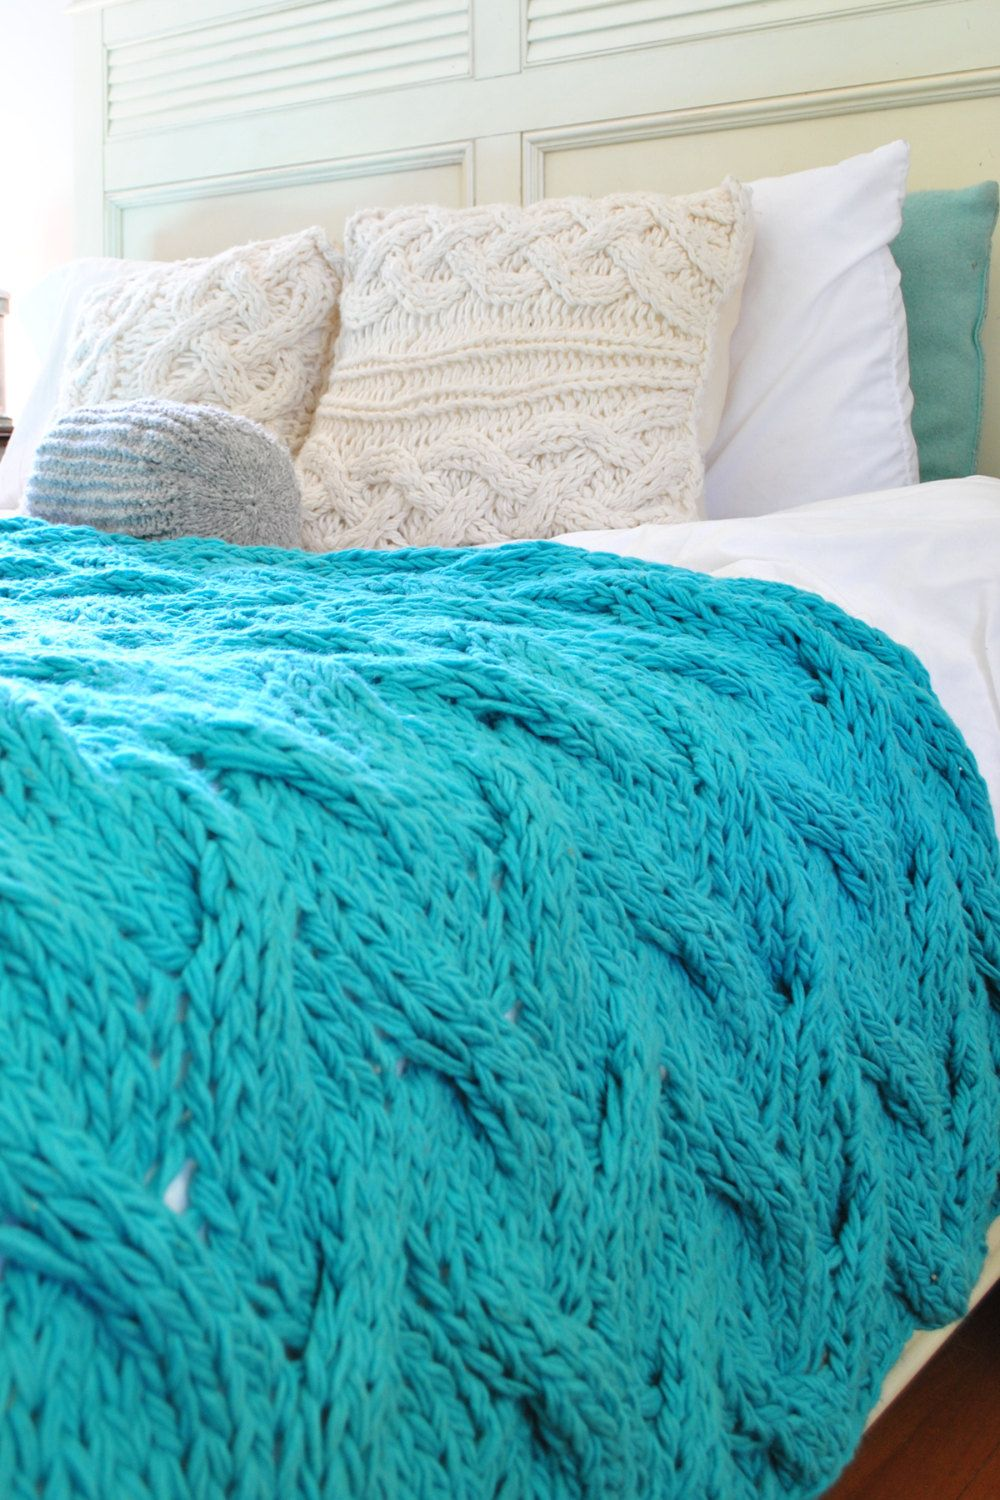 Knitting Patterns For Bed Throws : Light Turquoise Chunky Cable Knit Blanket in Cream Irish Wool Throw, Twin, Fu...